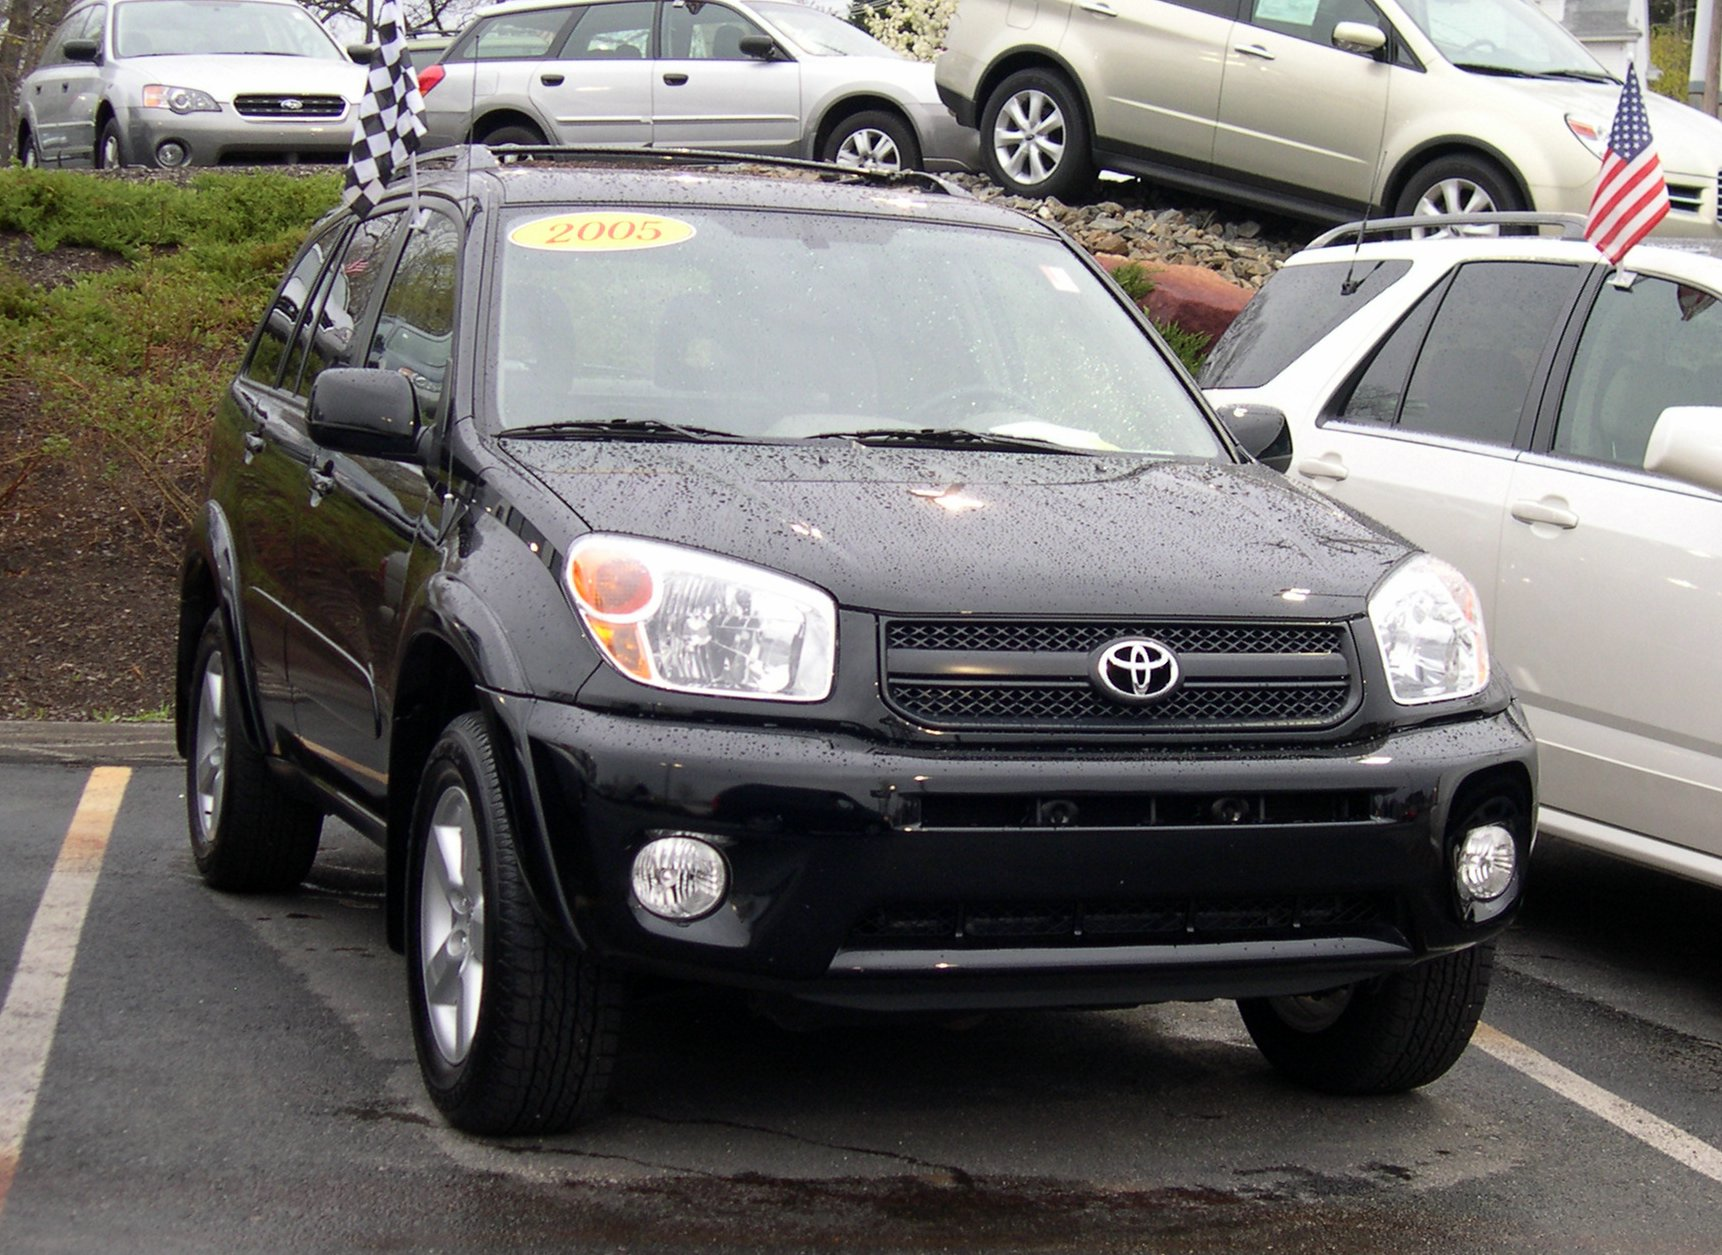 toyota rav4 2005 review amazing pictures and images look at the car. Black Bedroom Furniture Sets. Home Design Ideas